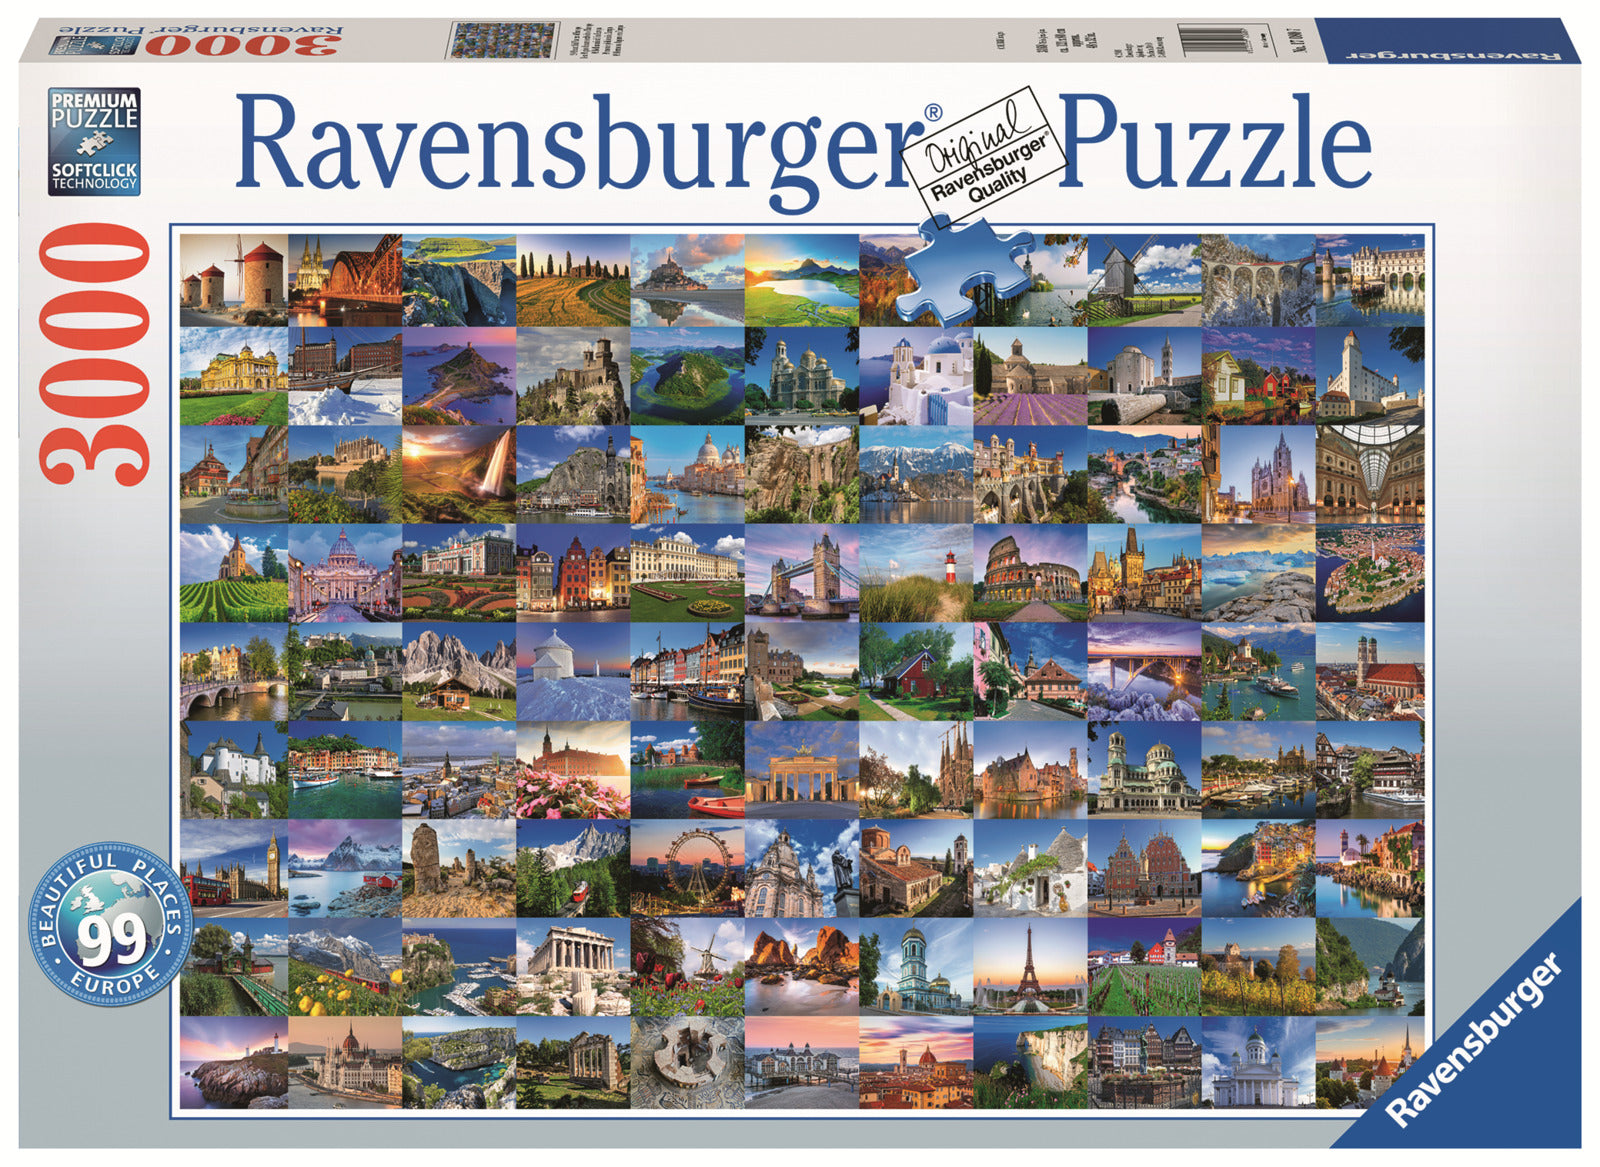 Ravensburger: 3,000 Piece Puzzle - 99 Beautiful Places of Europe